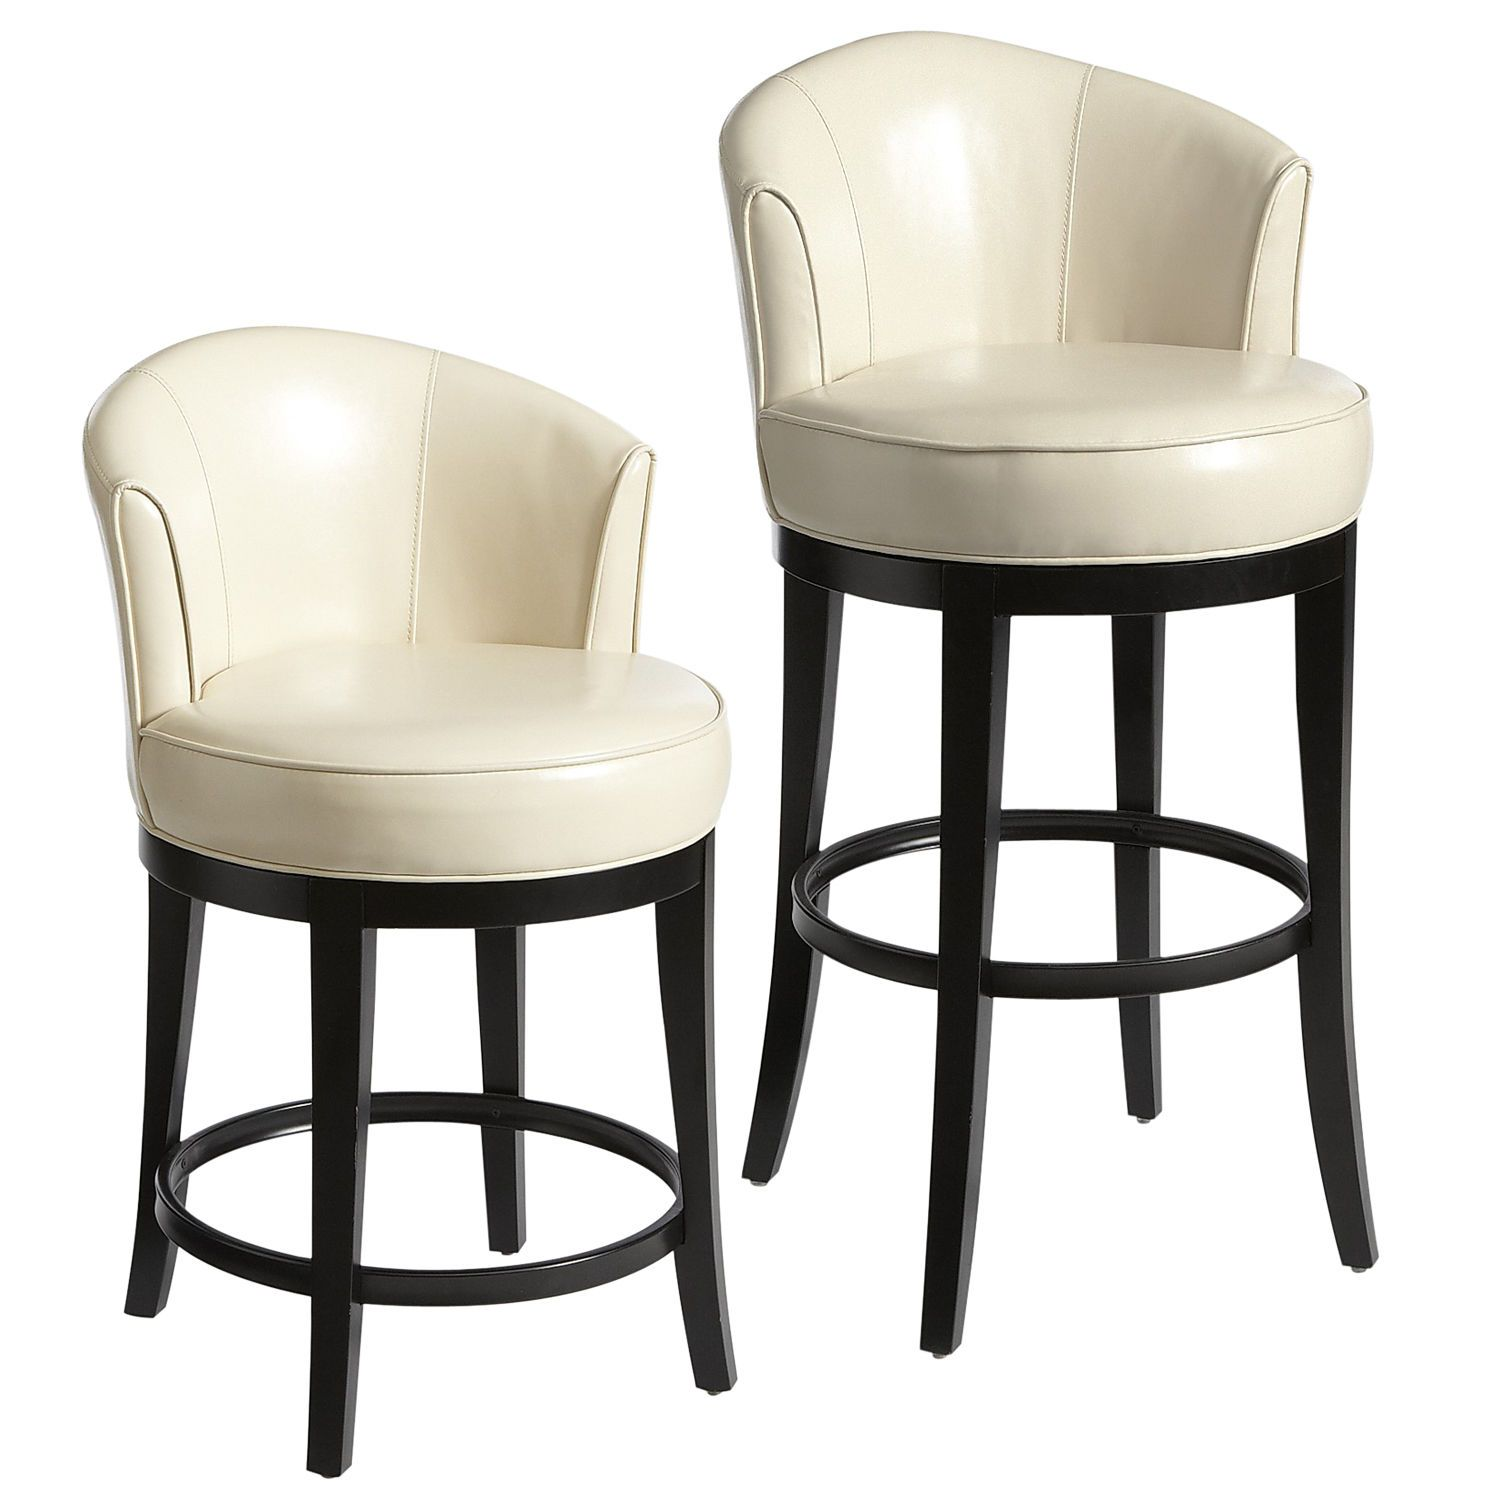 Isaac Swivel Bar Counter Stools Ivory Pier 1 Imports Bar